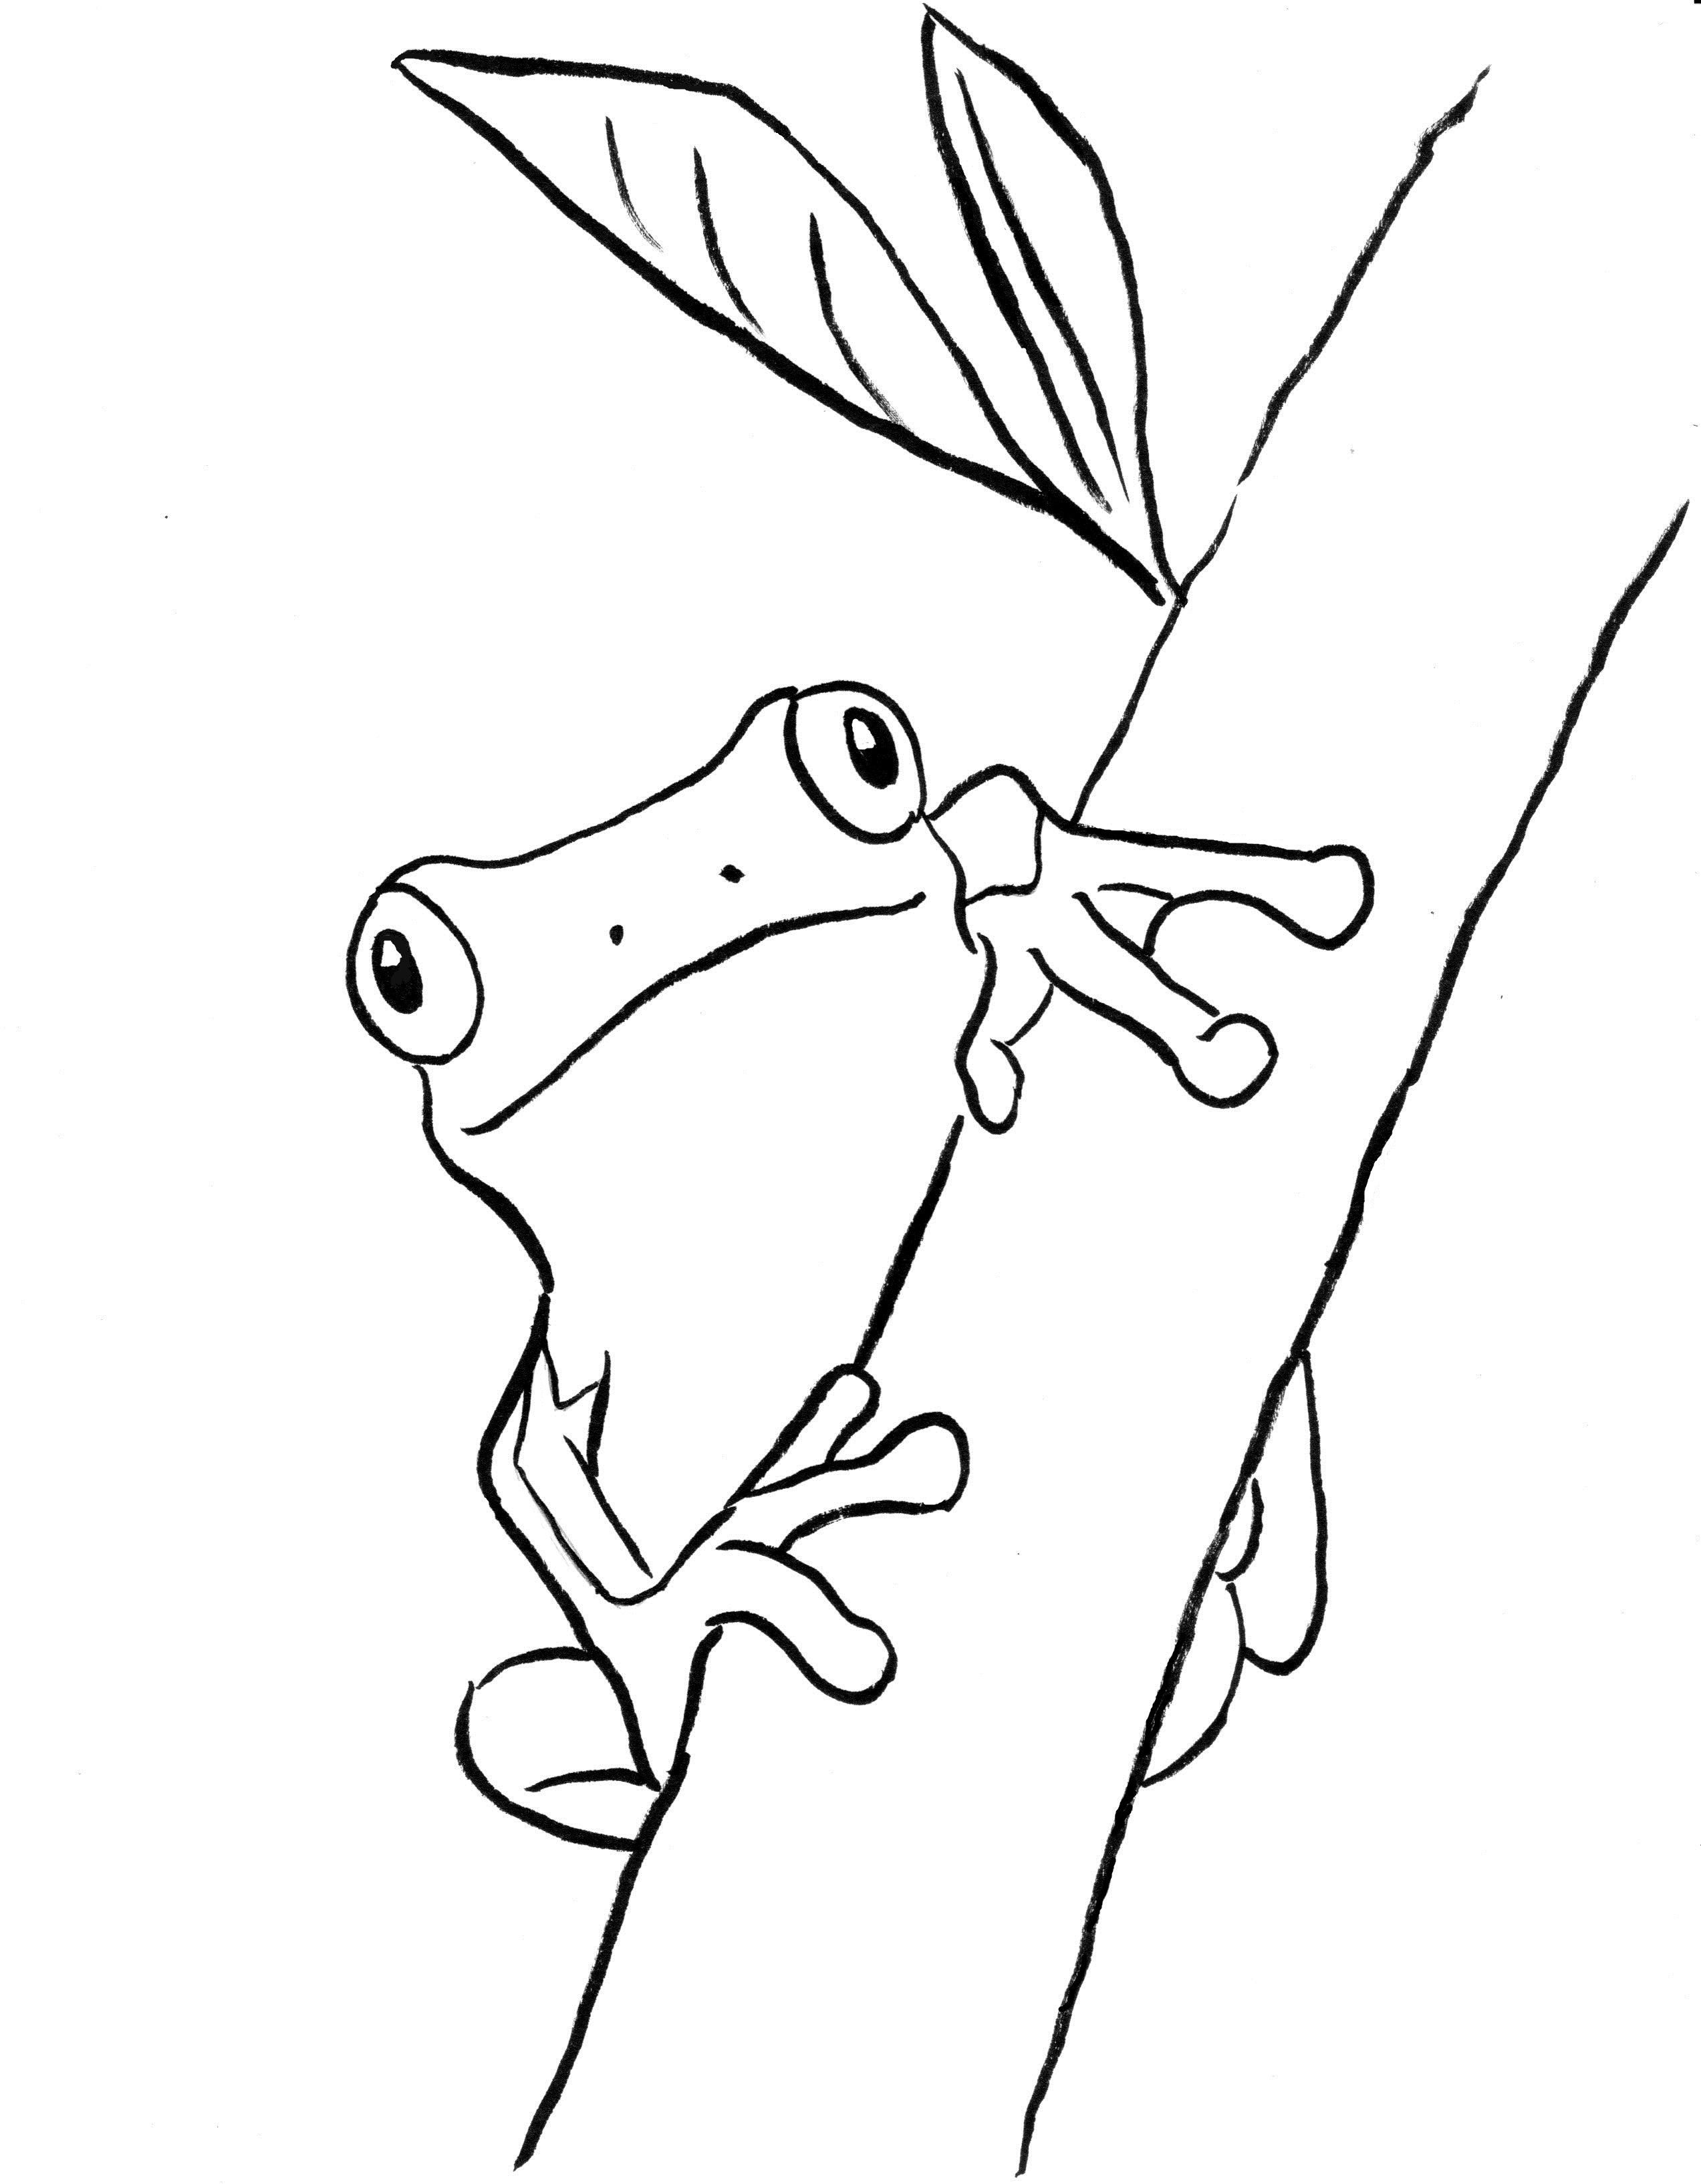 coloring images of frog tree frog coloring page art starts frog coloring of images